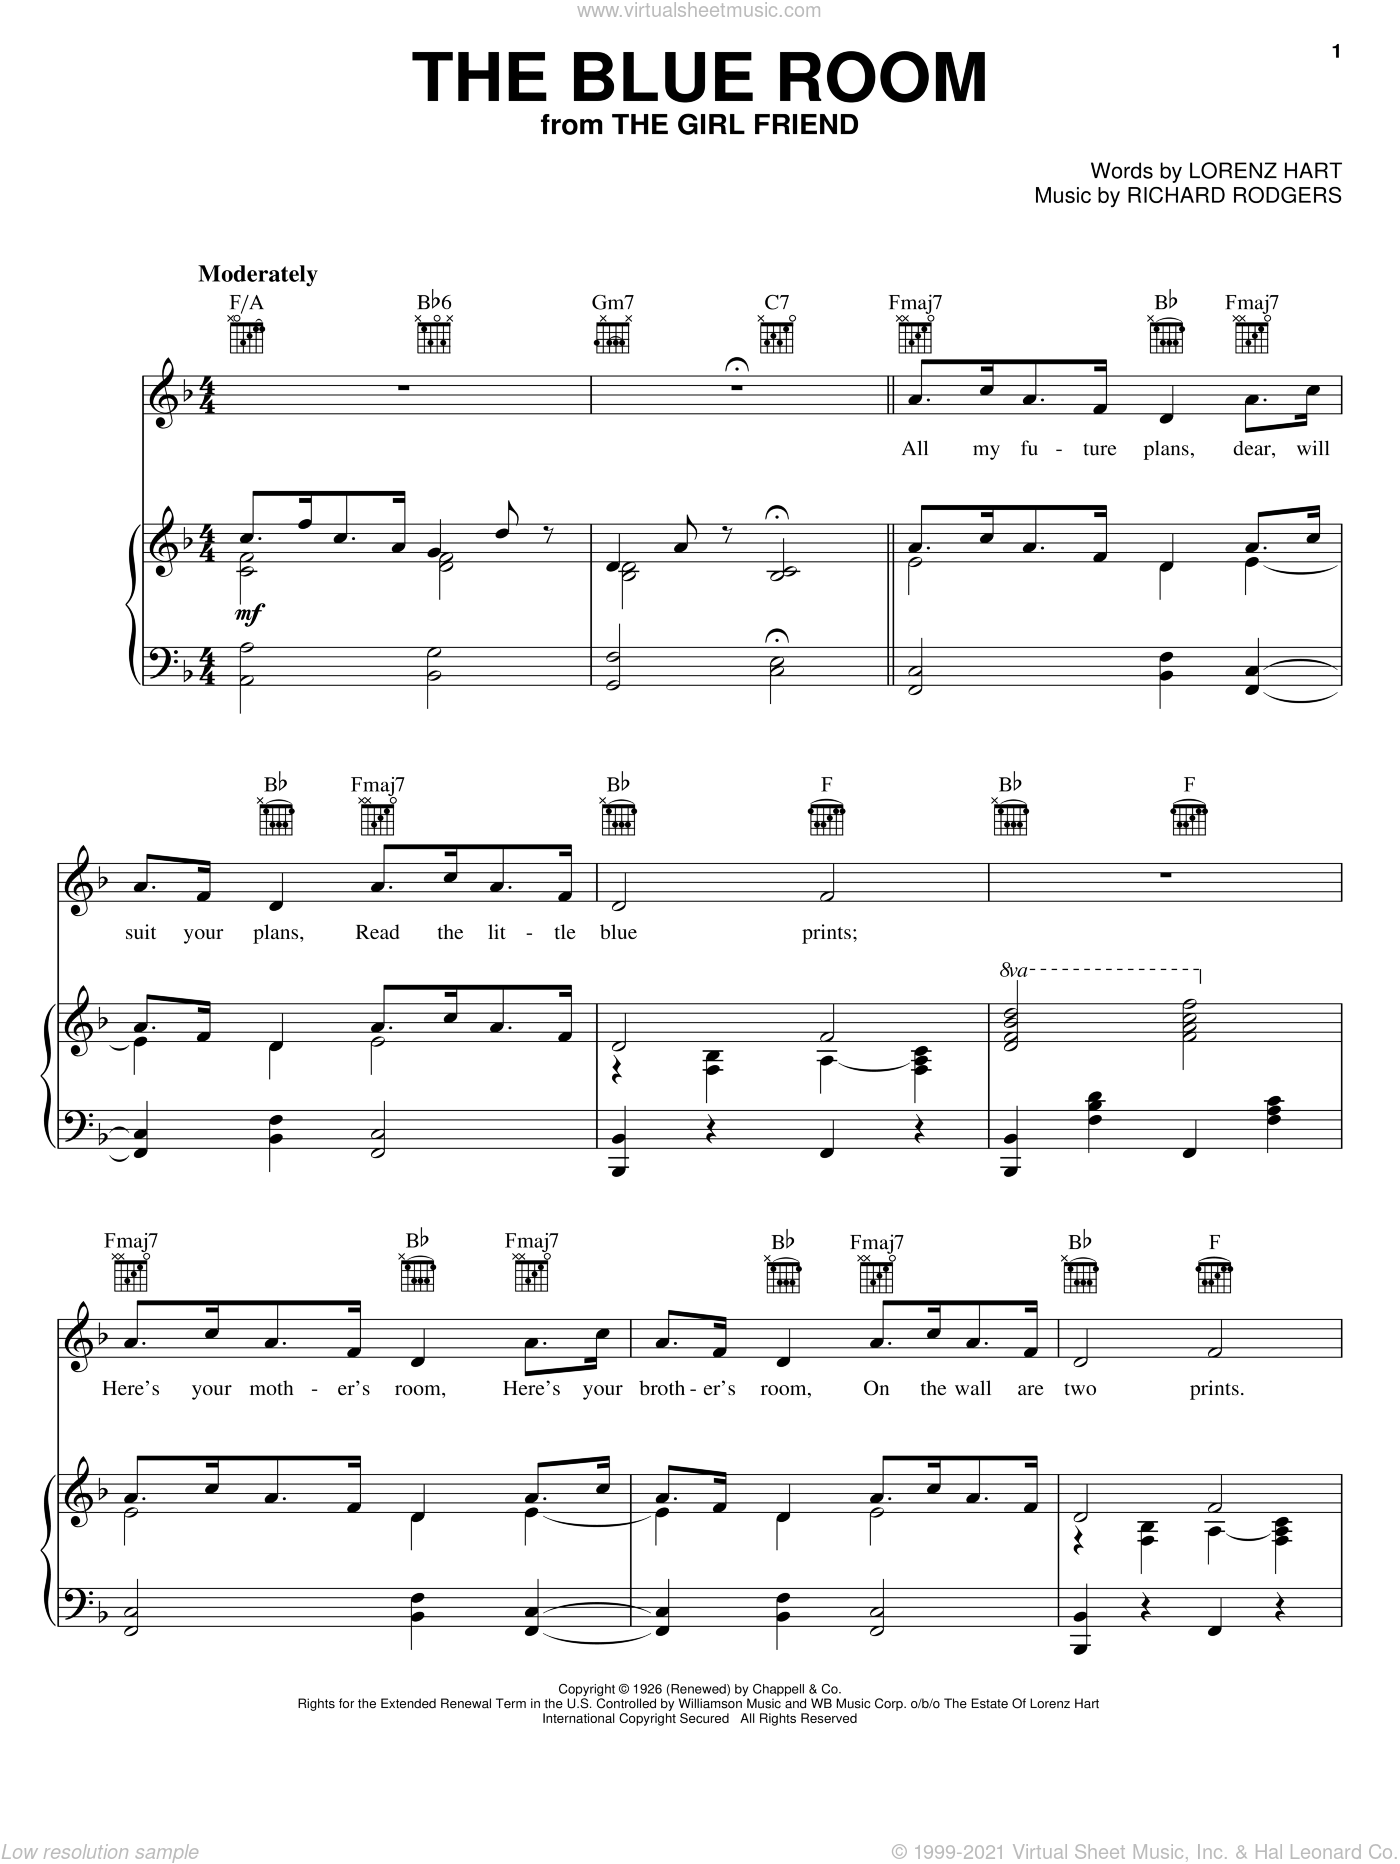 The Blue Room sheet music for voice, piano or guitar by Richard Rodgers